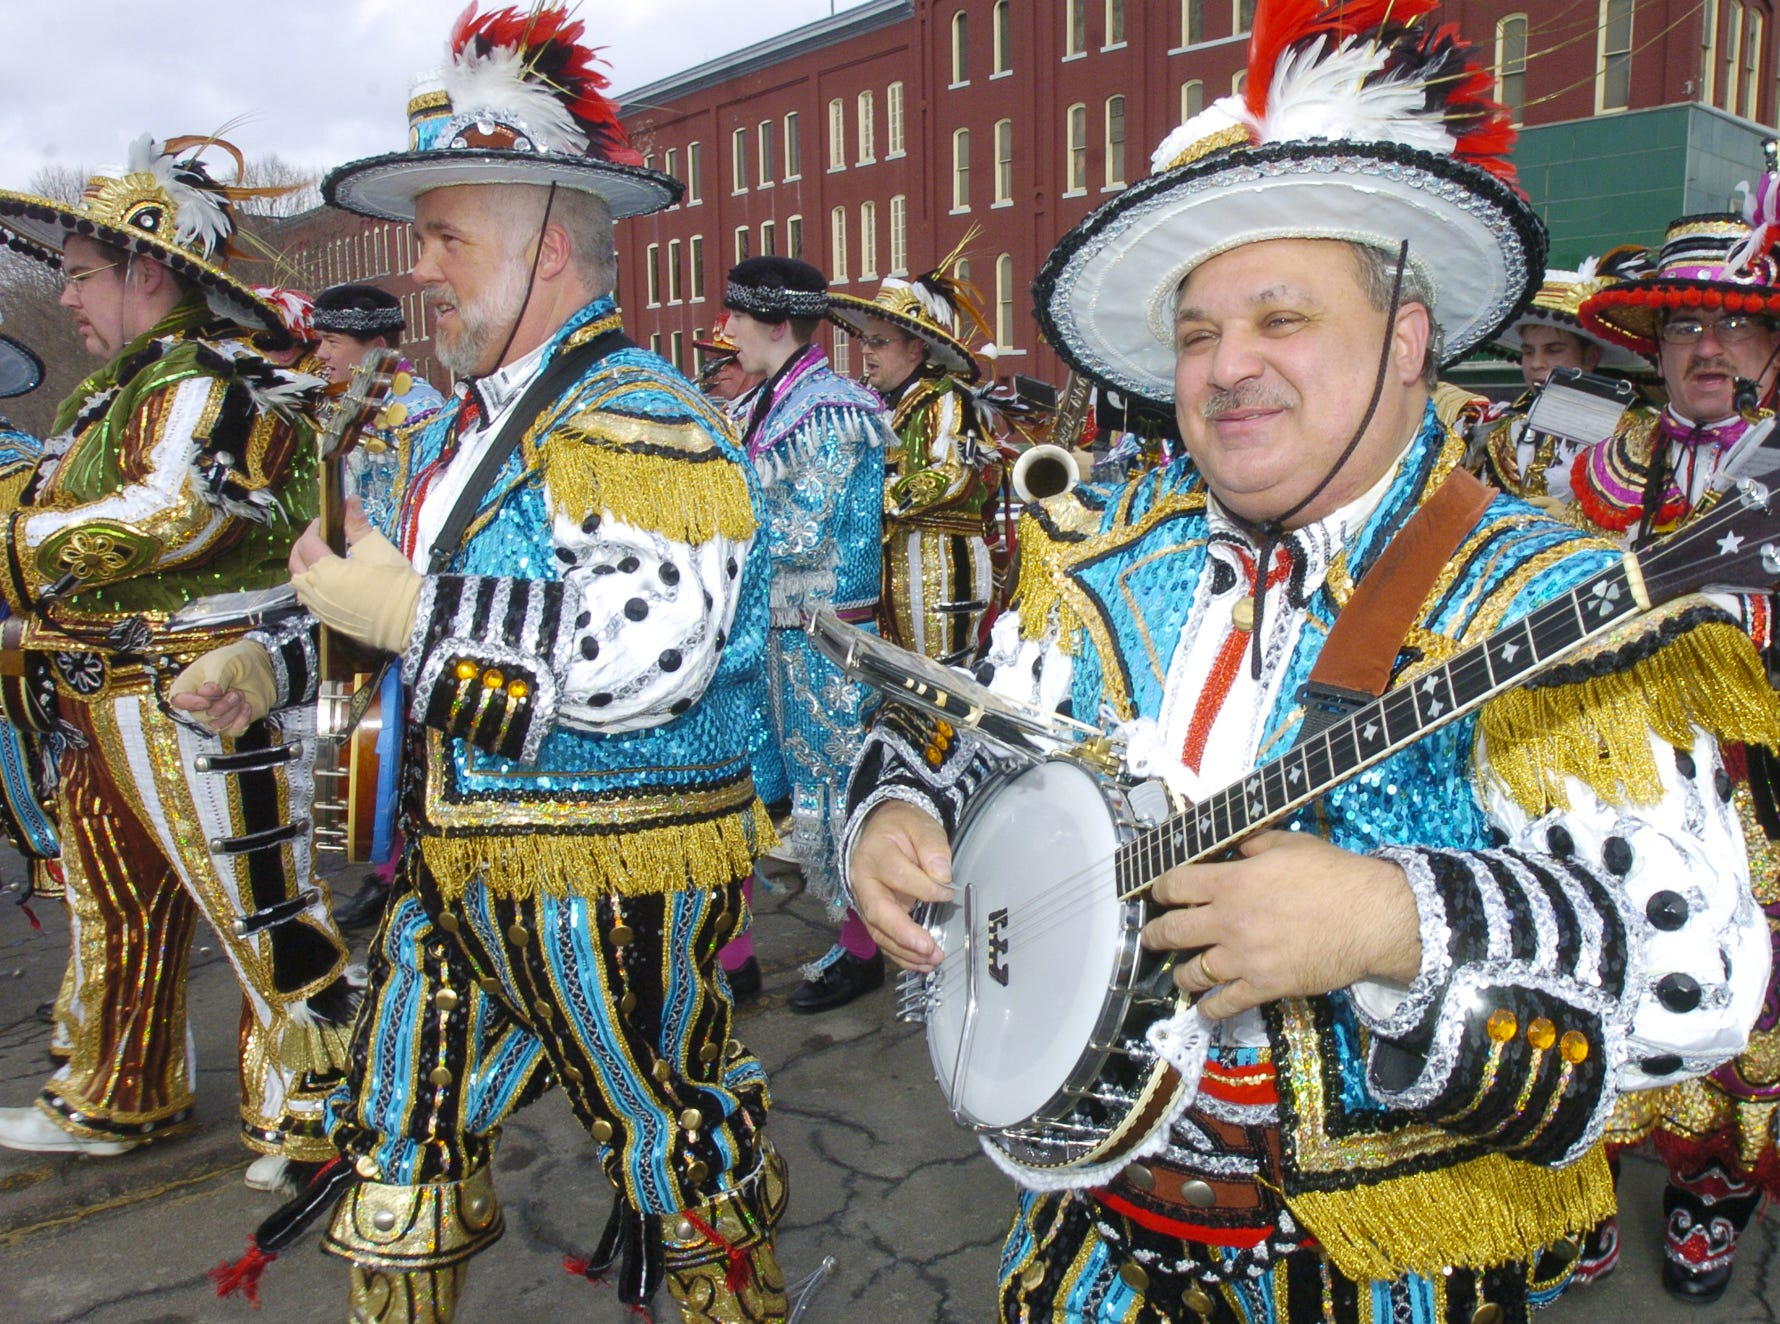 2006: Banjo players lead the group from the Avalon String Band from Philadelphia in Saturday's St. Patrick's Day parade in downtown Binghamton.